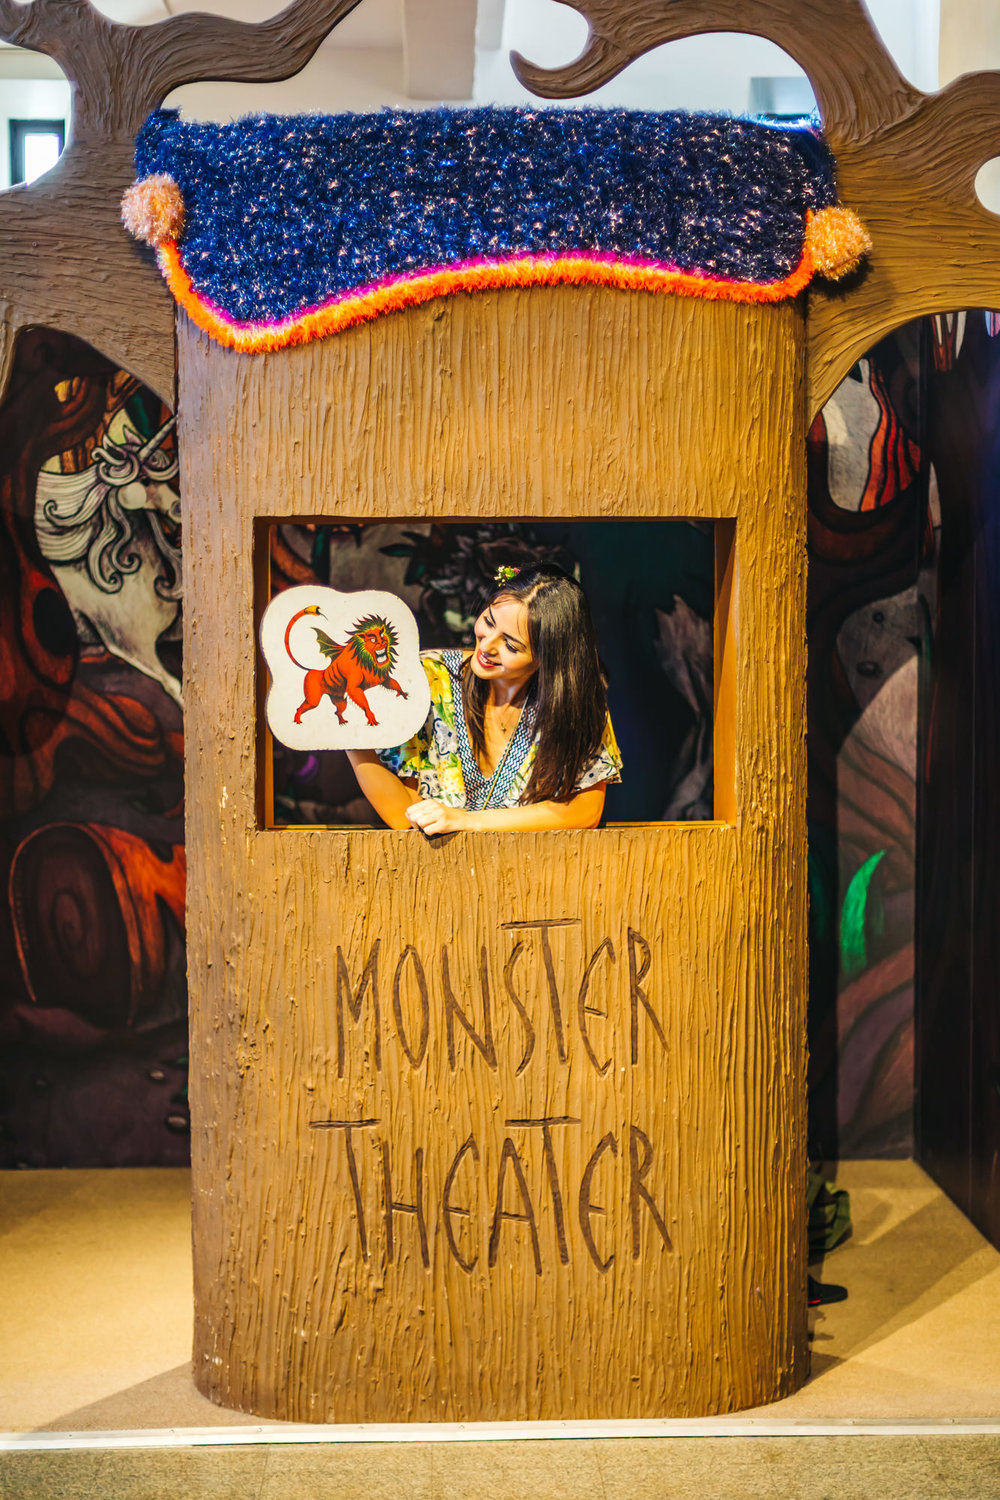 Museum of Man Monster Theater